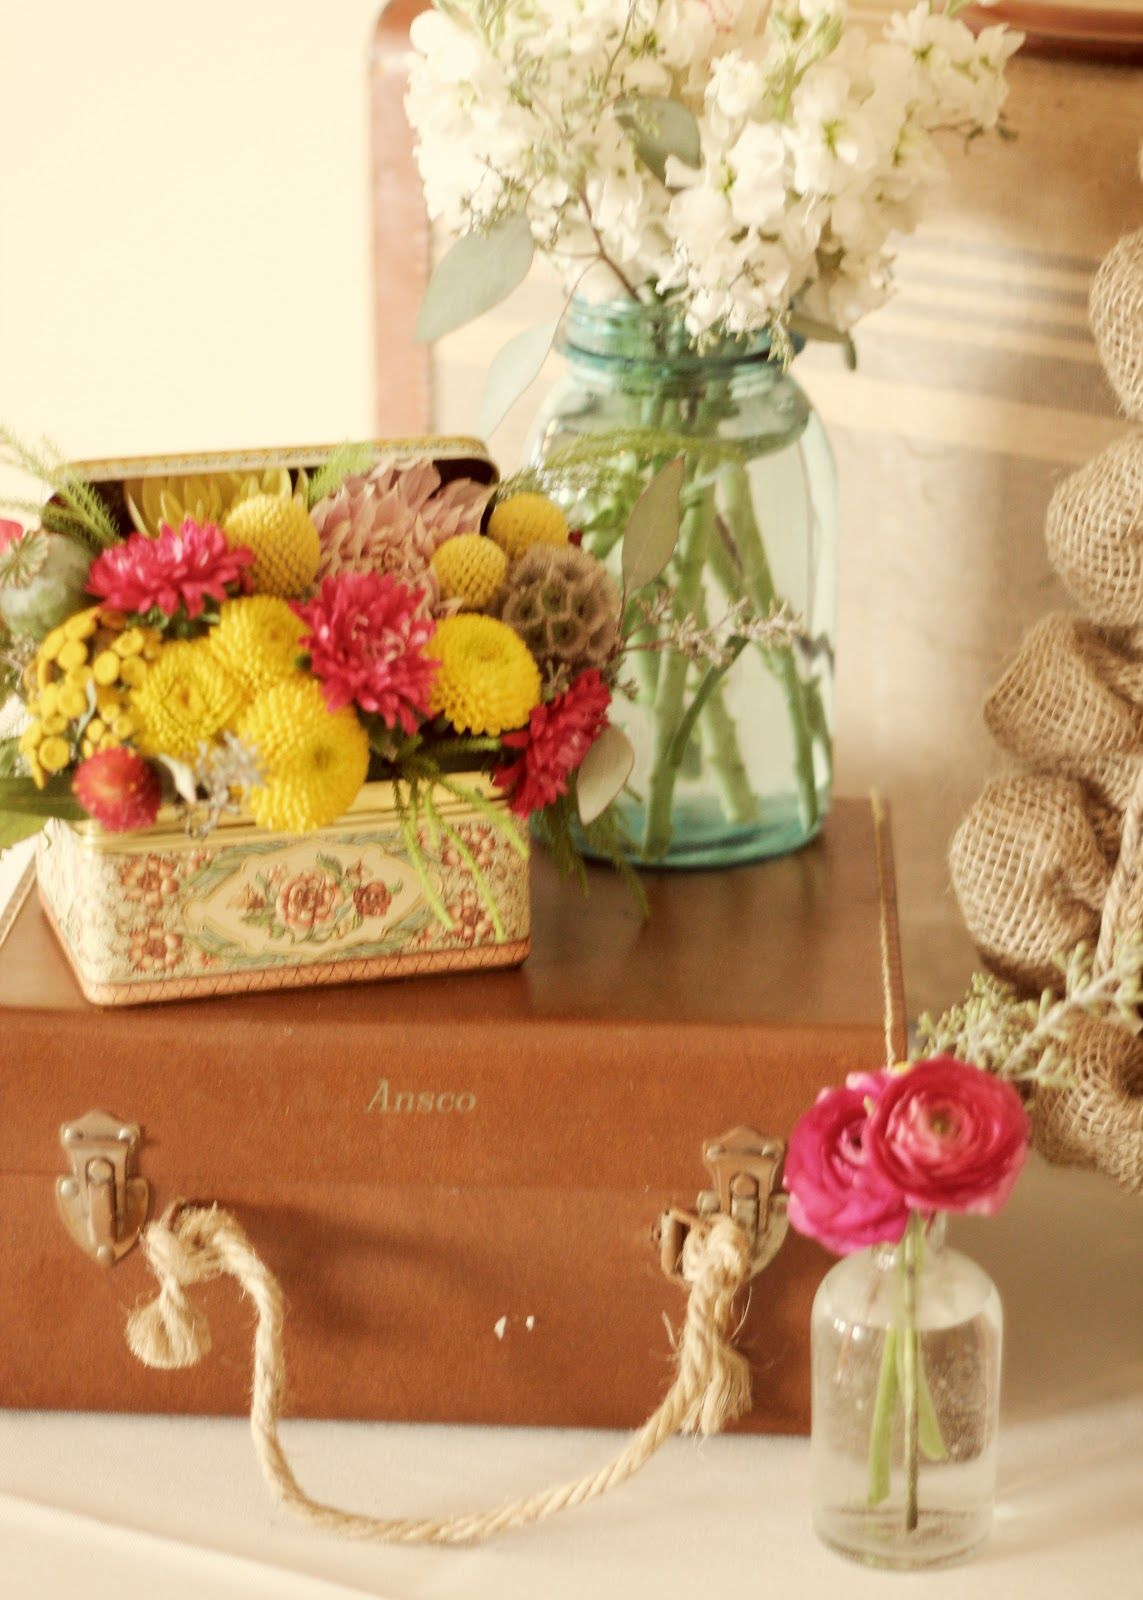 whimsy decor for the home pinterest tablescapes friday five b whimsy